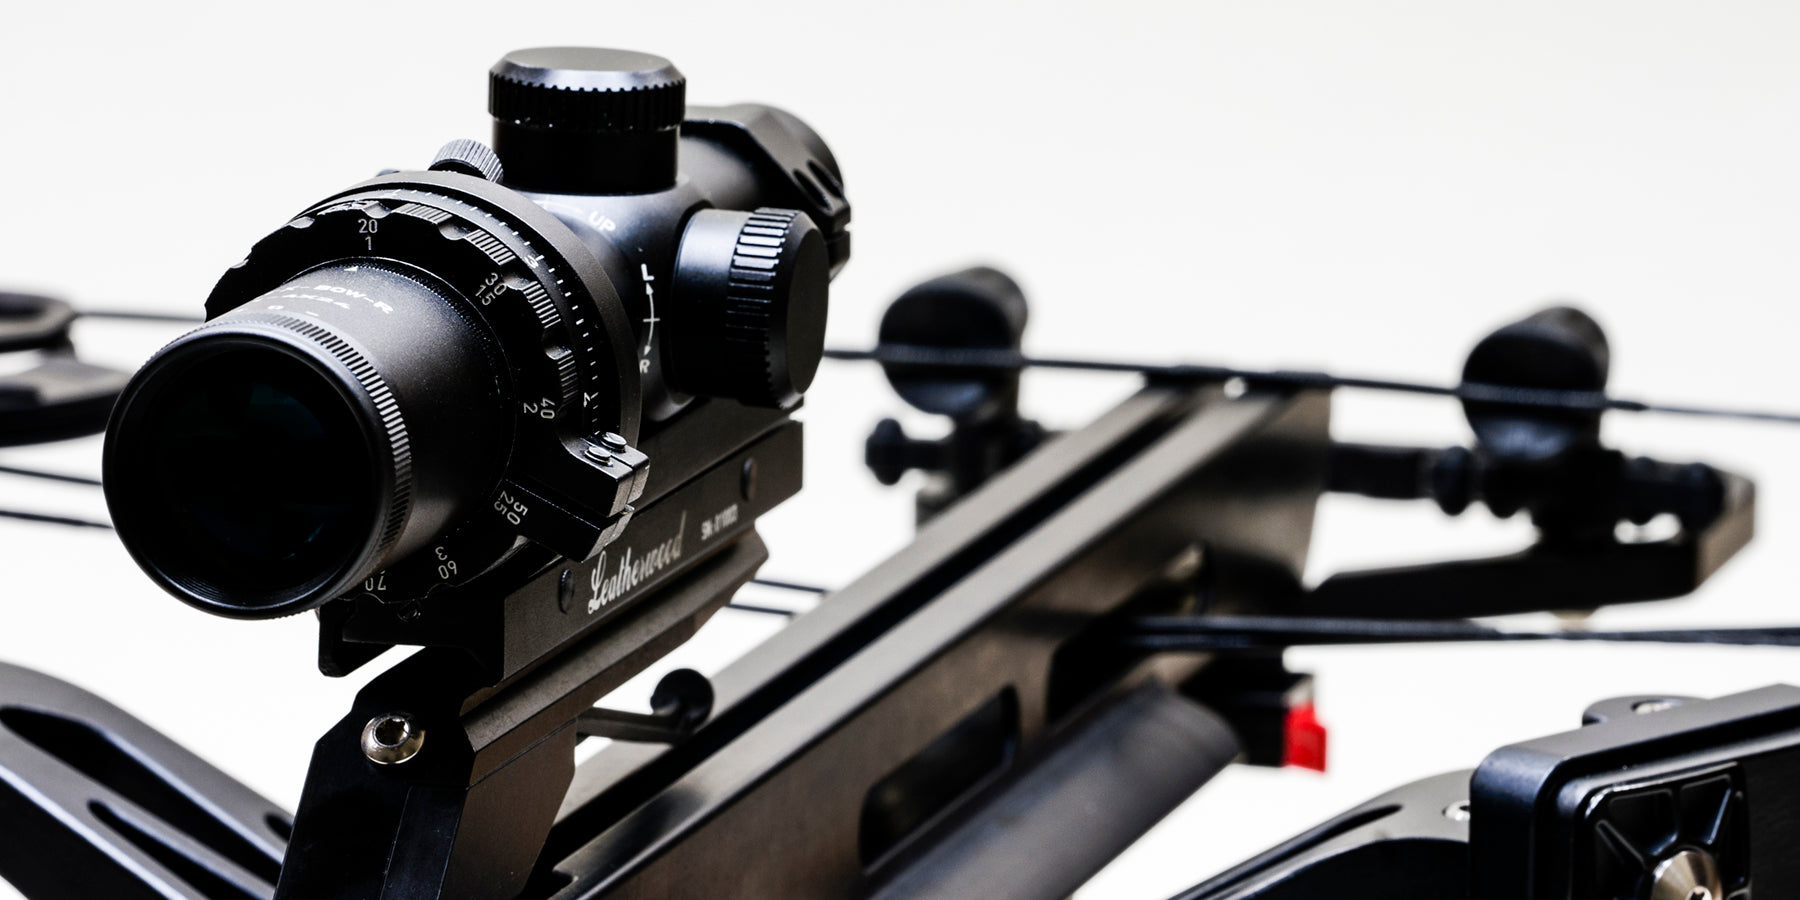 ART X-BOW Crossbow Scope